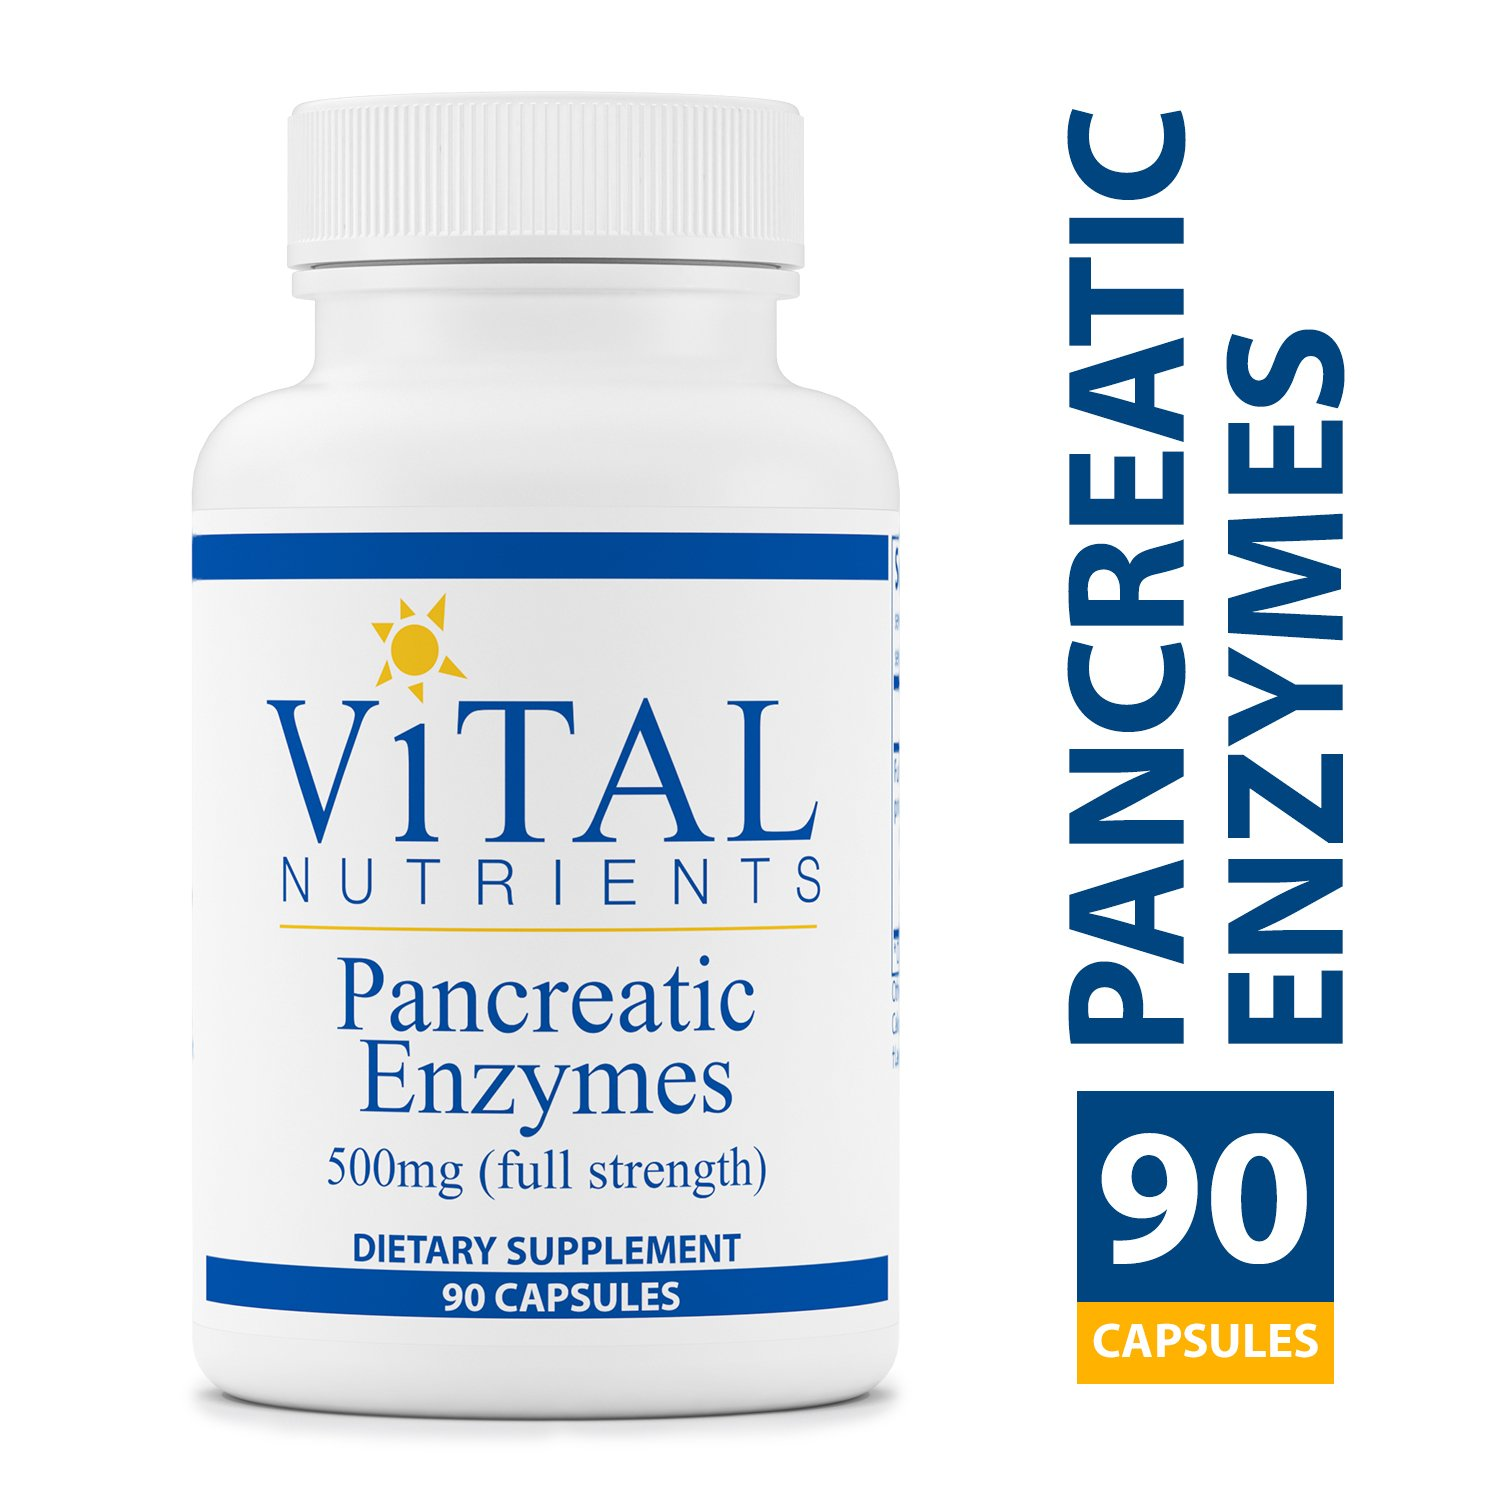 Vital Nutrients - Pancreatic Enzymes 500 mg Supplement (Full Strength) - Supports Healthy Digestion of Proteins, Fats, and Carbohydrates - Suitable for Men and Women - 90 Capsules per Bottle by Vital Nutrients